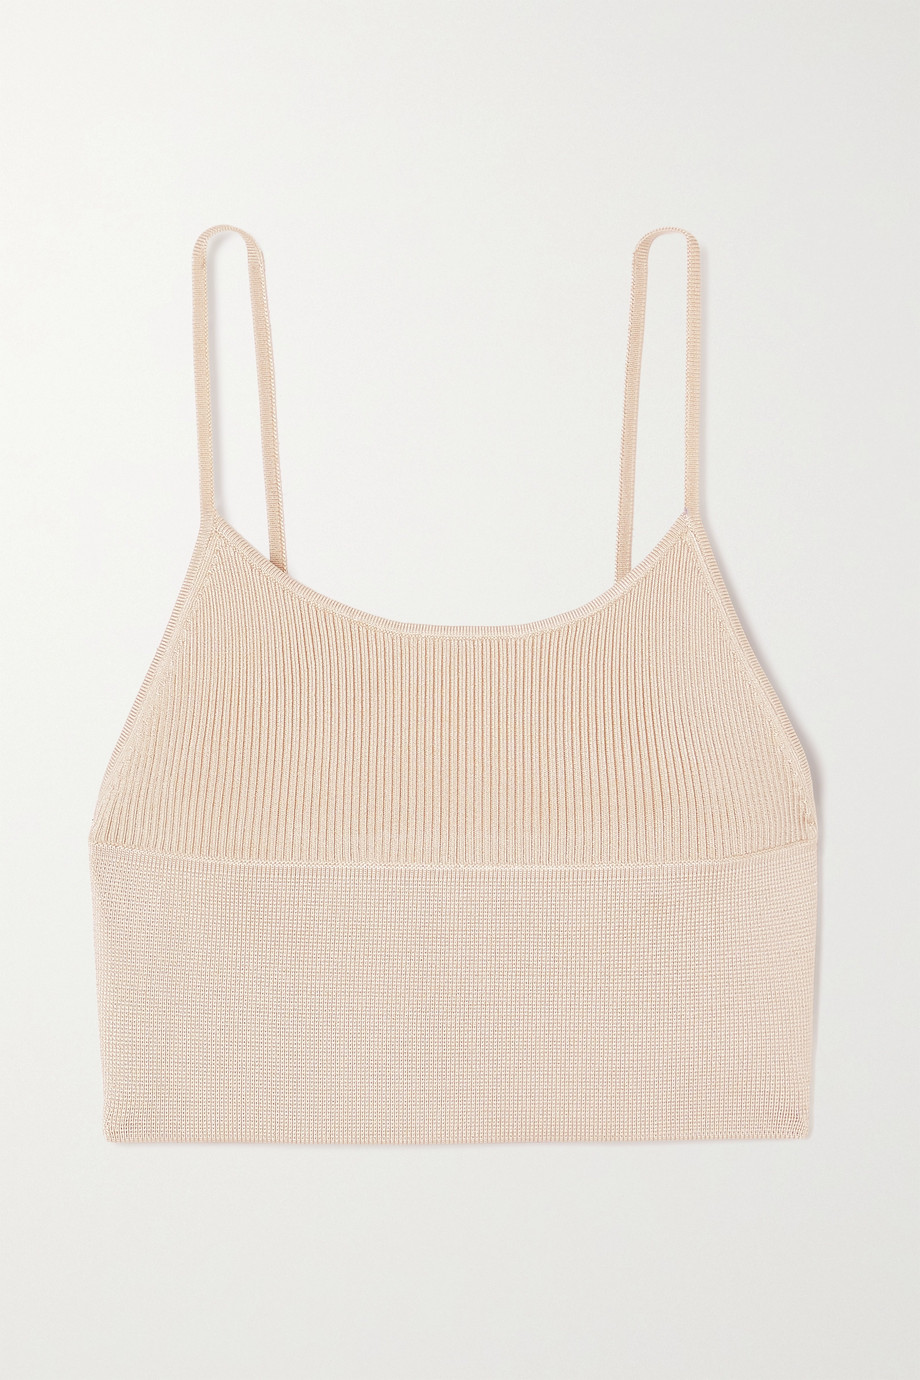 Dion Lee Density cropped ribbed-knit top